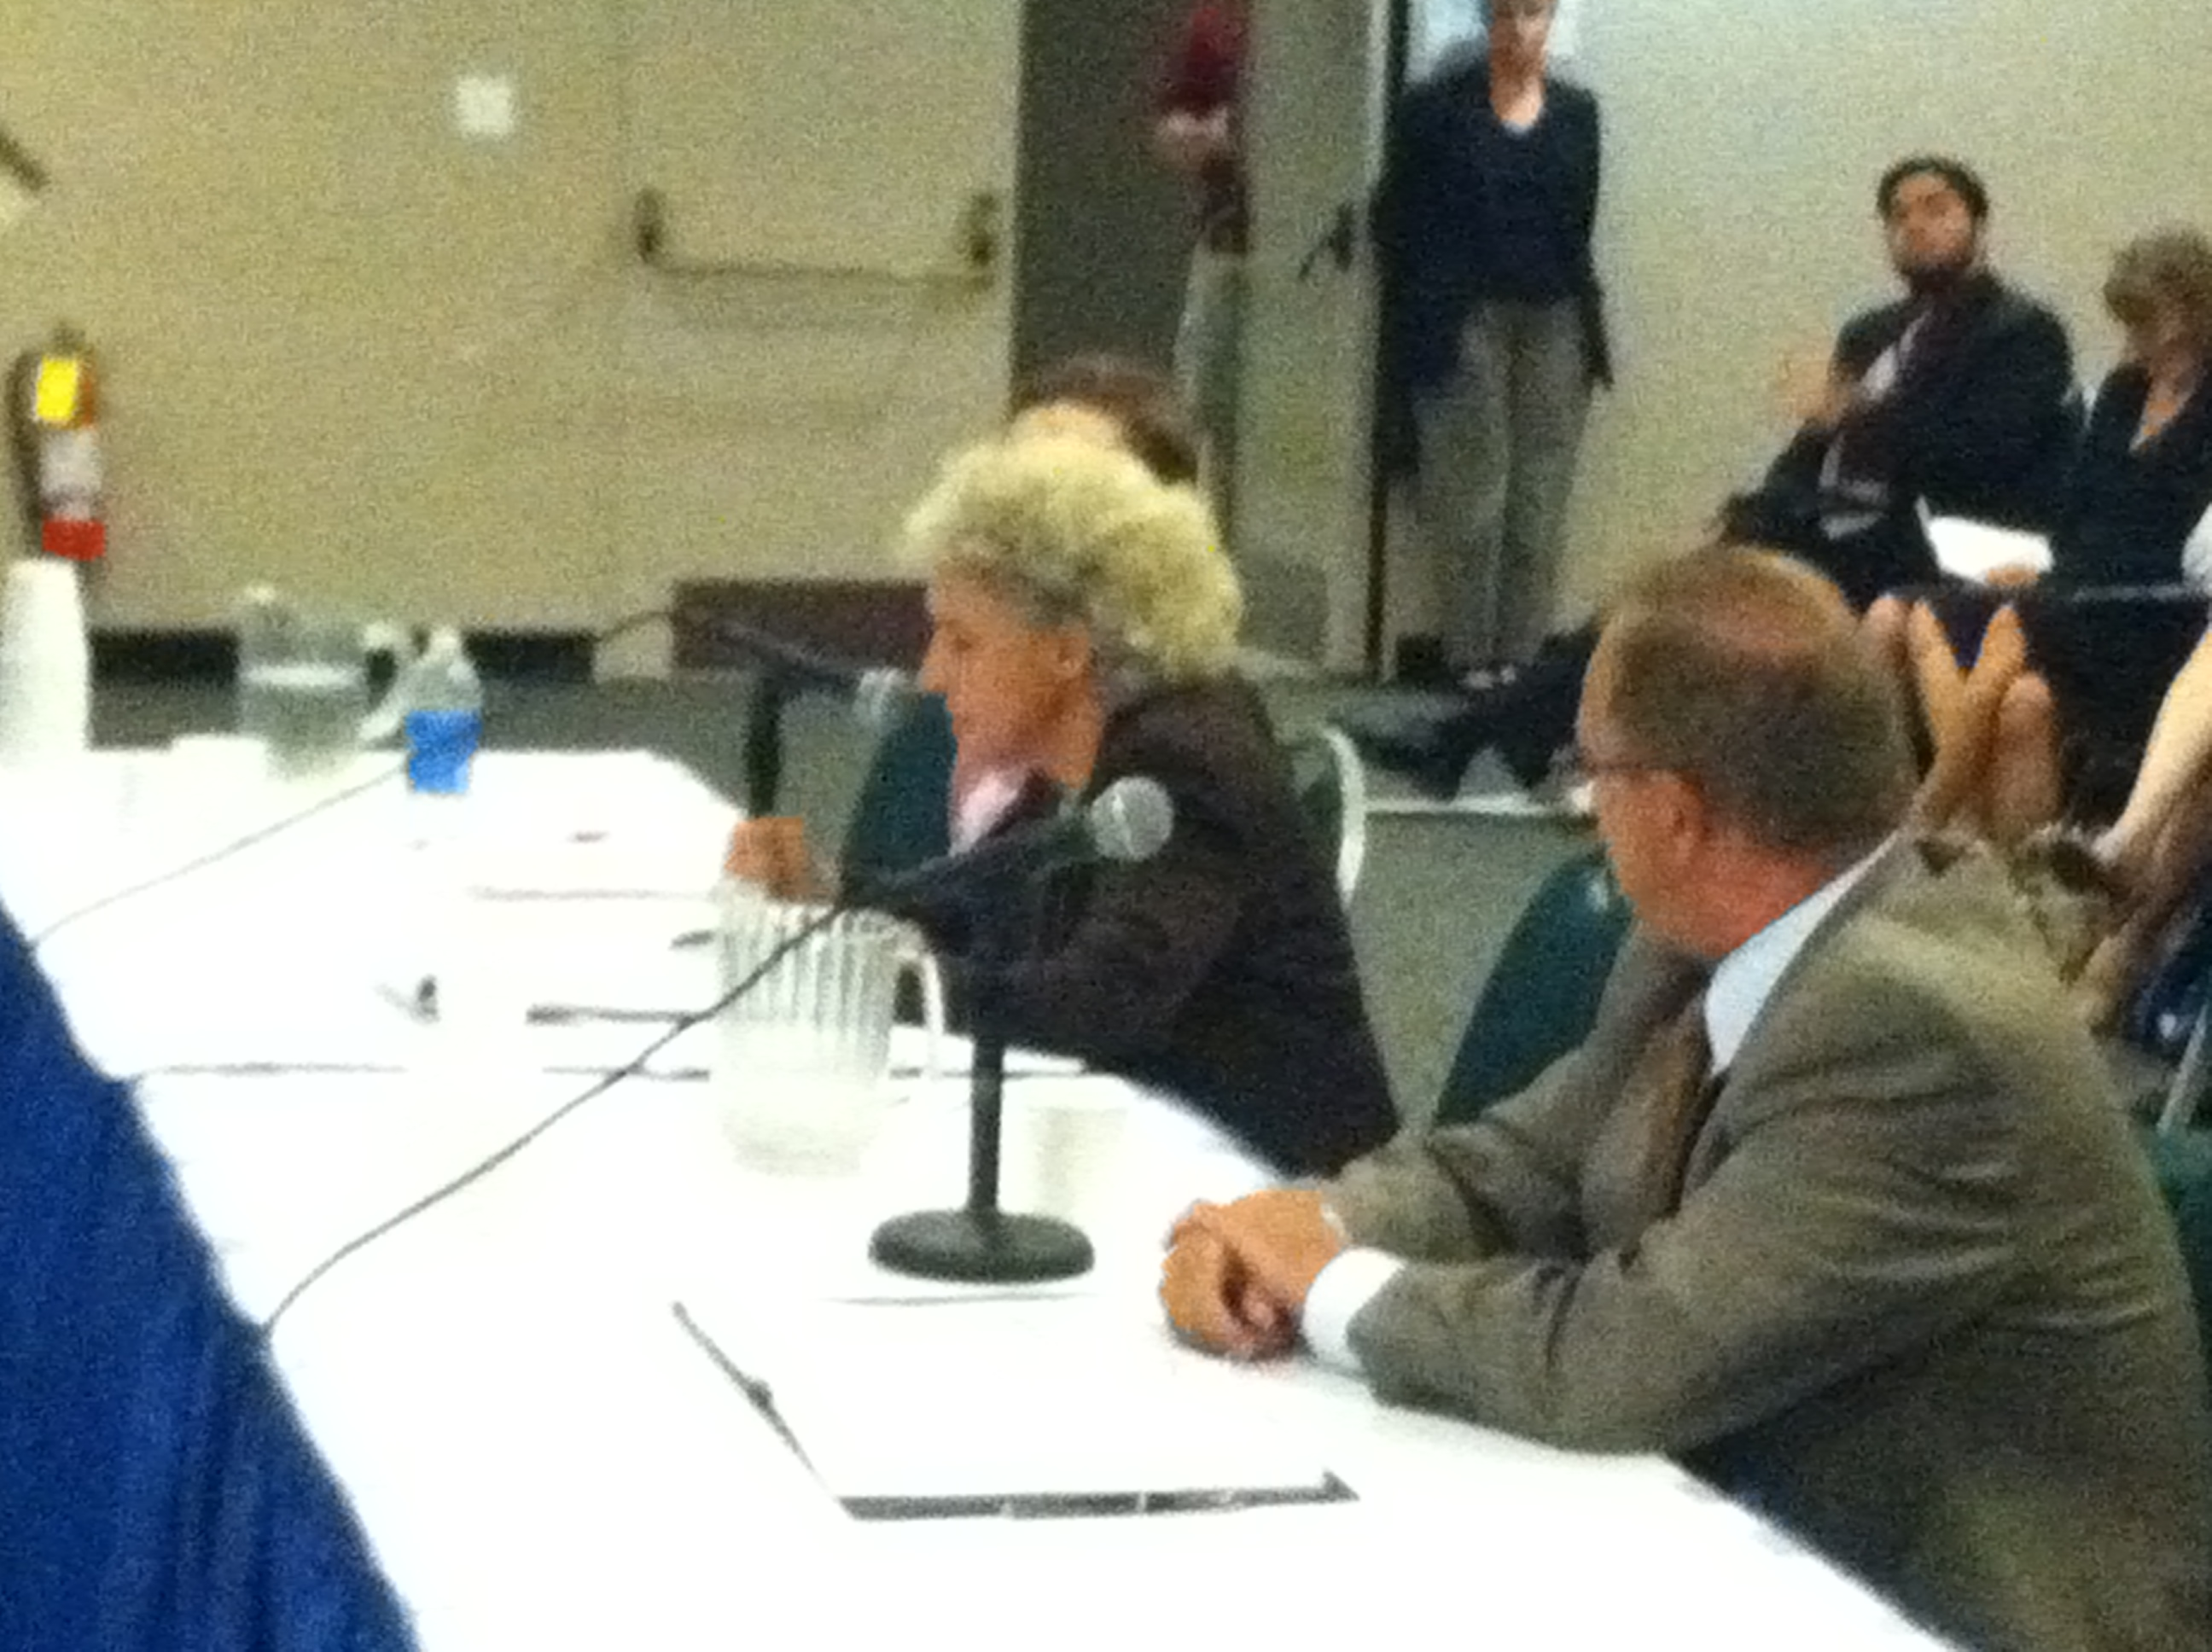 Testimonies of Karen Scharff and Kate Breslin at Today's NY Education Reform Commission Hearing